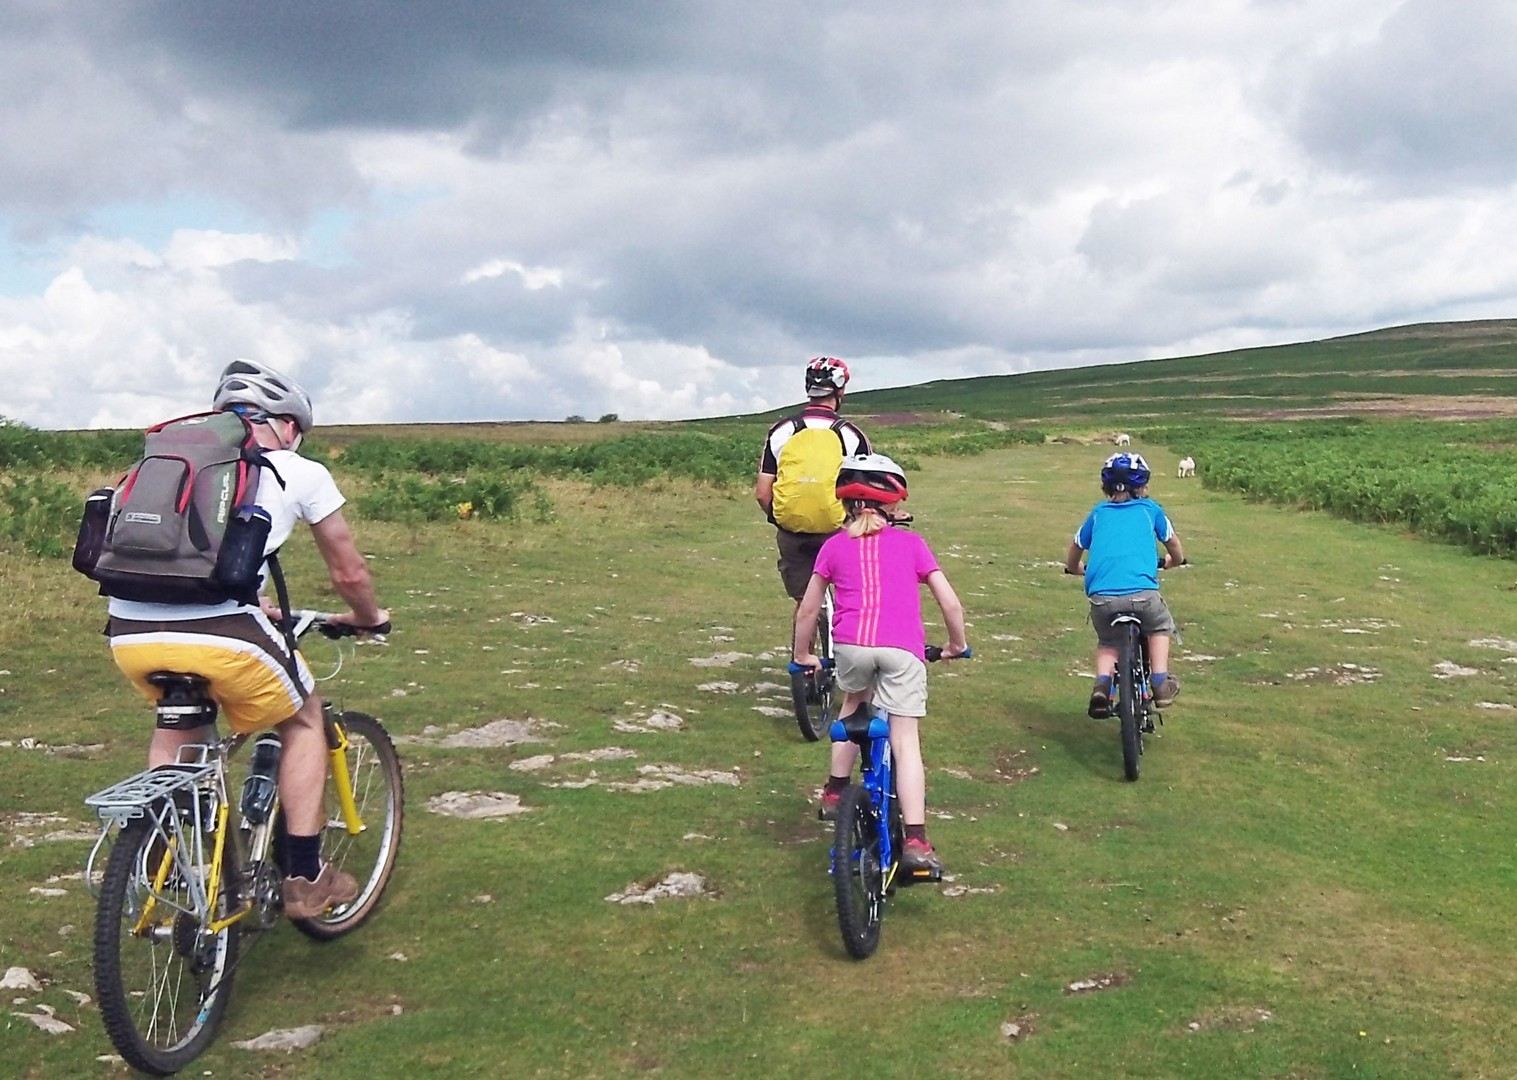 family-cycling-lake-district-guided.jpg - UK - Lake District - Guided Family Bike Skills - Family Cycling